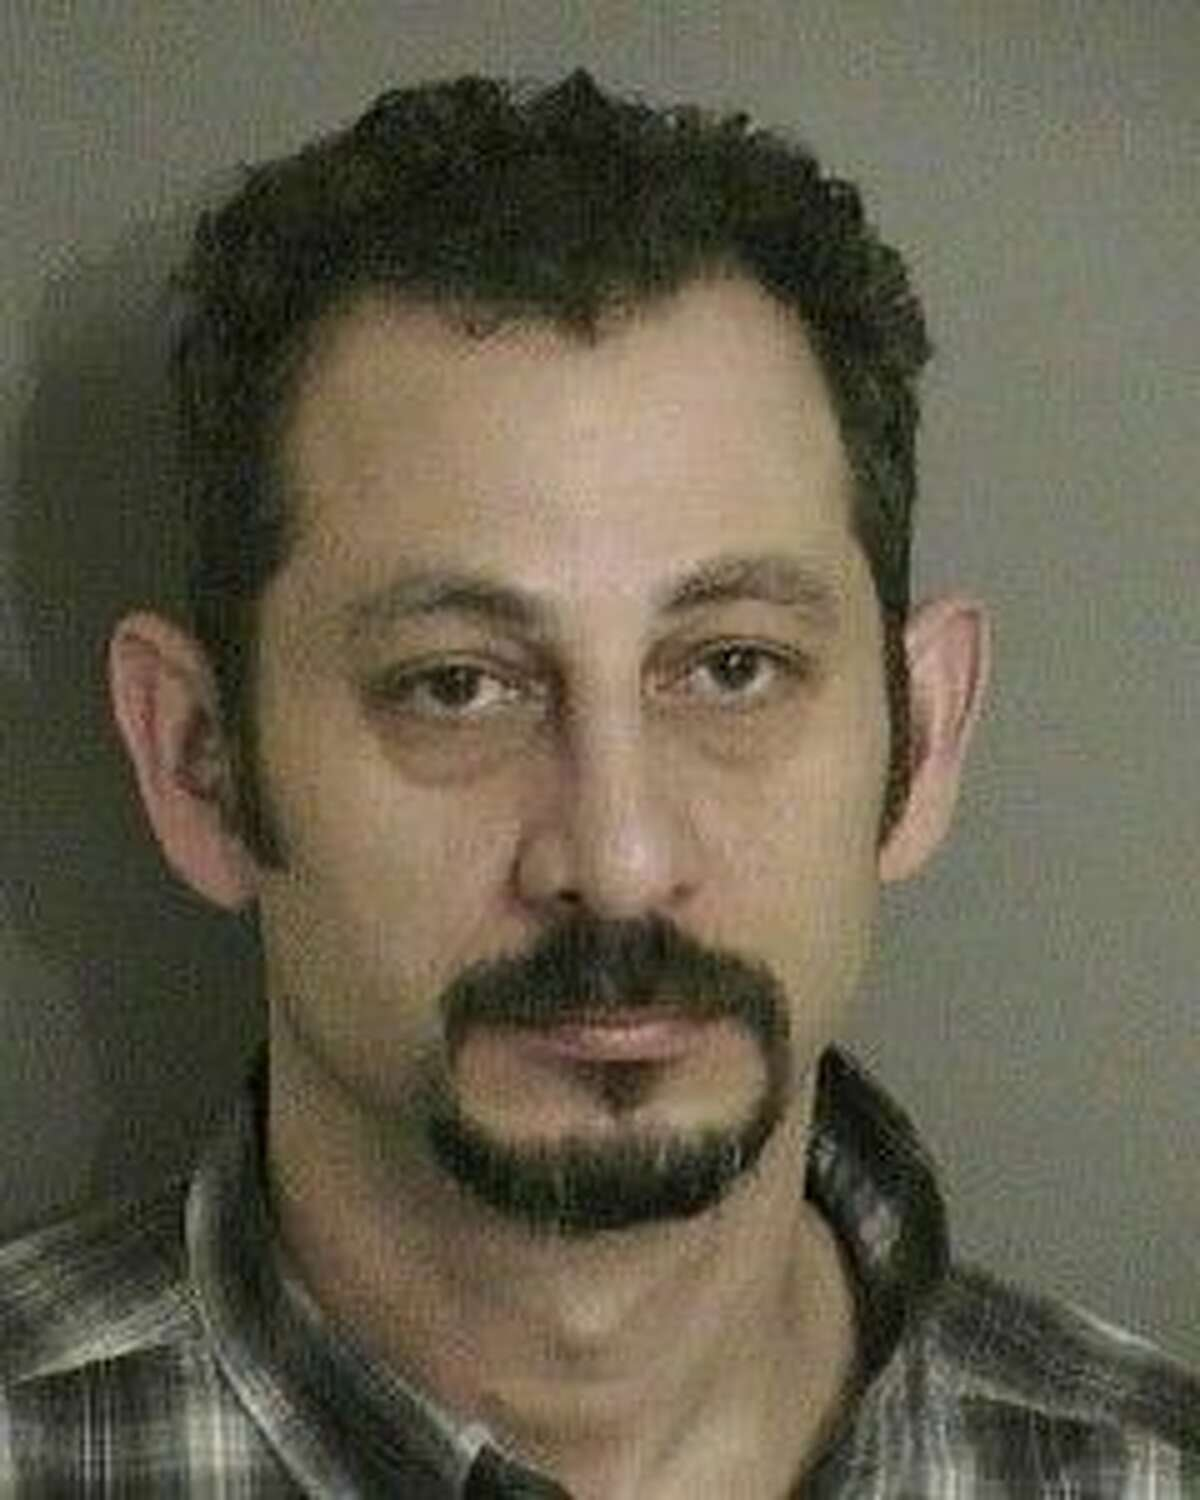 Francisco Charles Arroyo, photo courtesy of the Marlette Police Department.